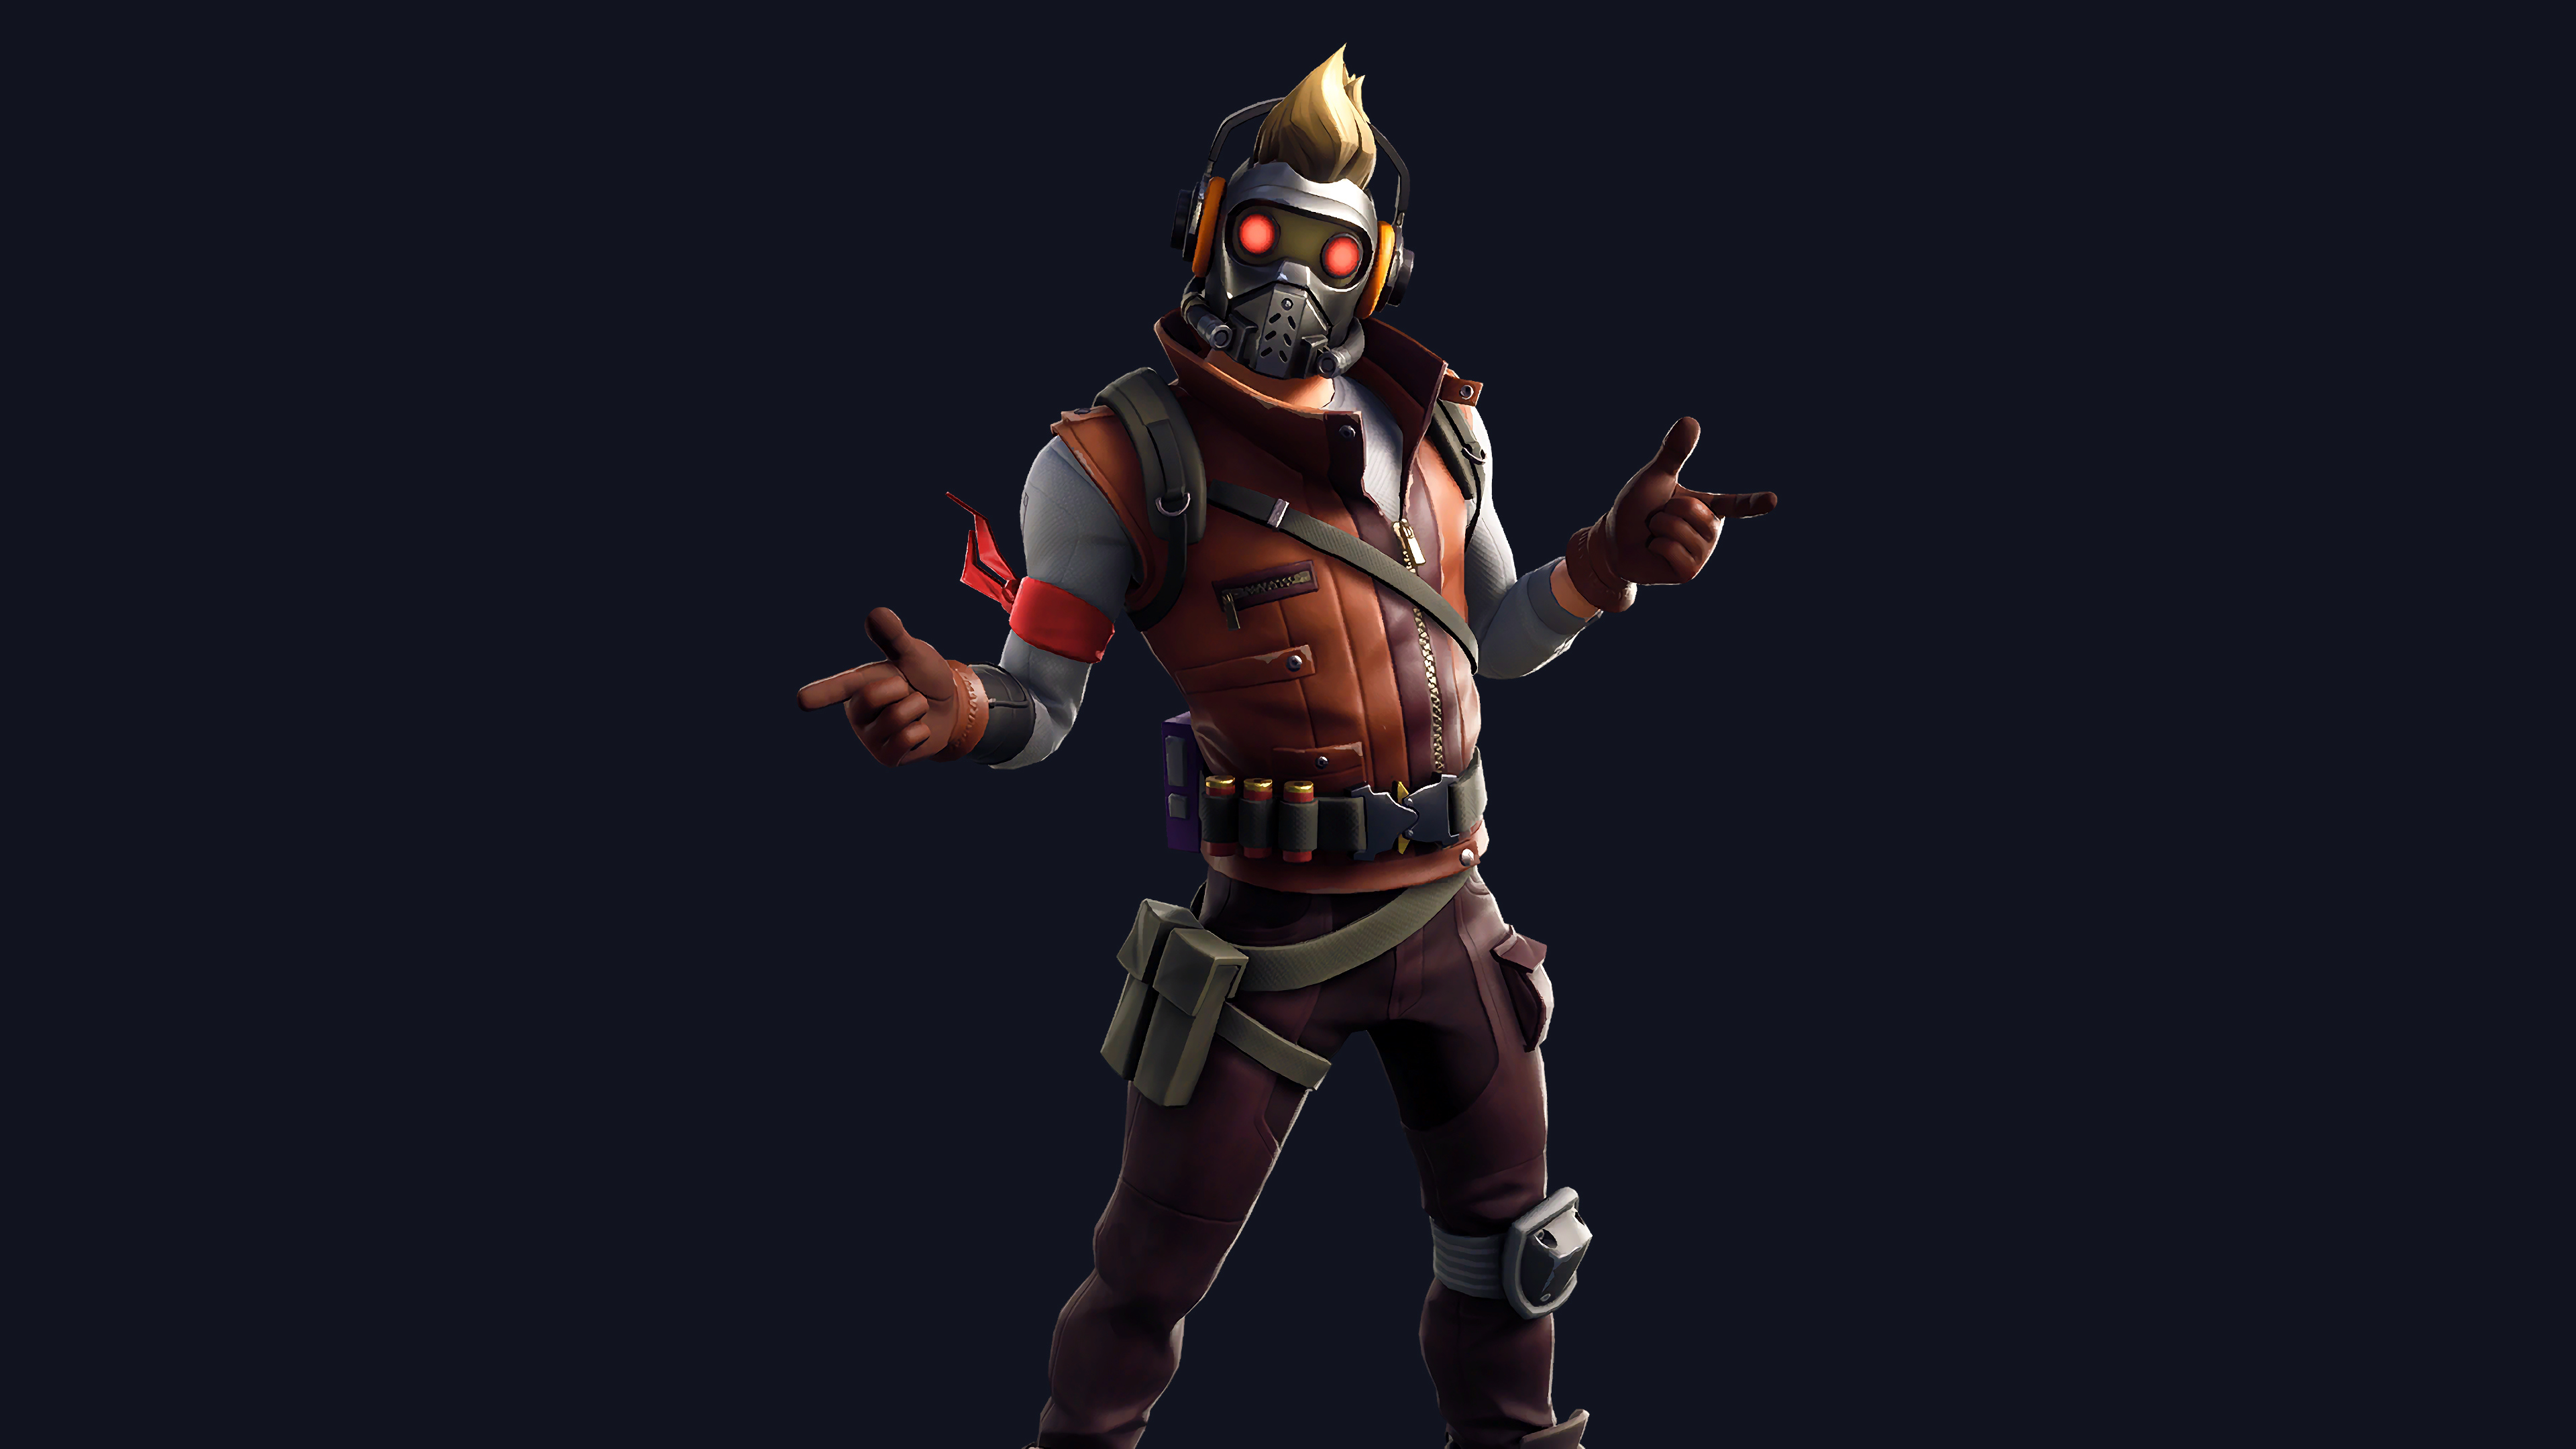 Star Lord Outfit Skin Fortnite Avengers Wallpaper Hd Games